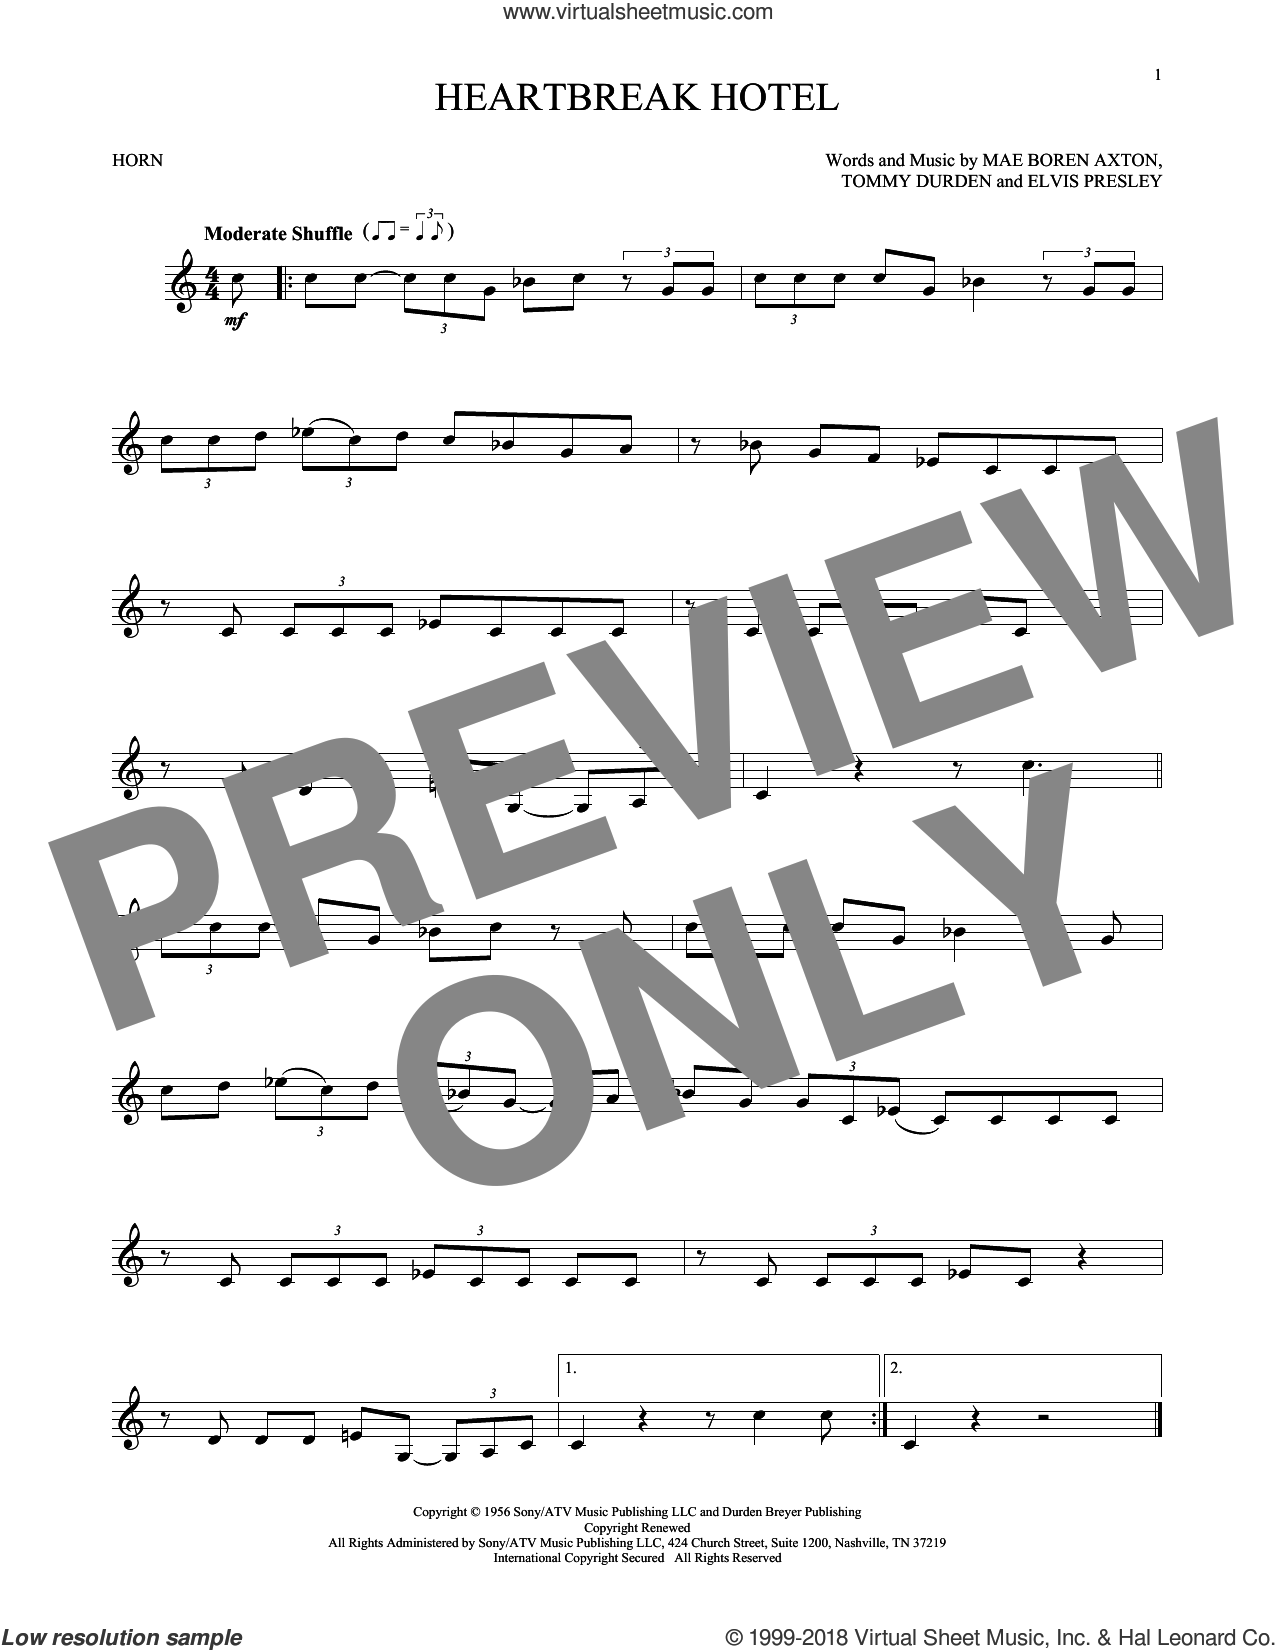 Heartbreak Hotel sheet music for horn solo by Elvis Presley, Mae Boren Axton and Tommy Durden, intermediate skill level